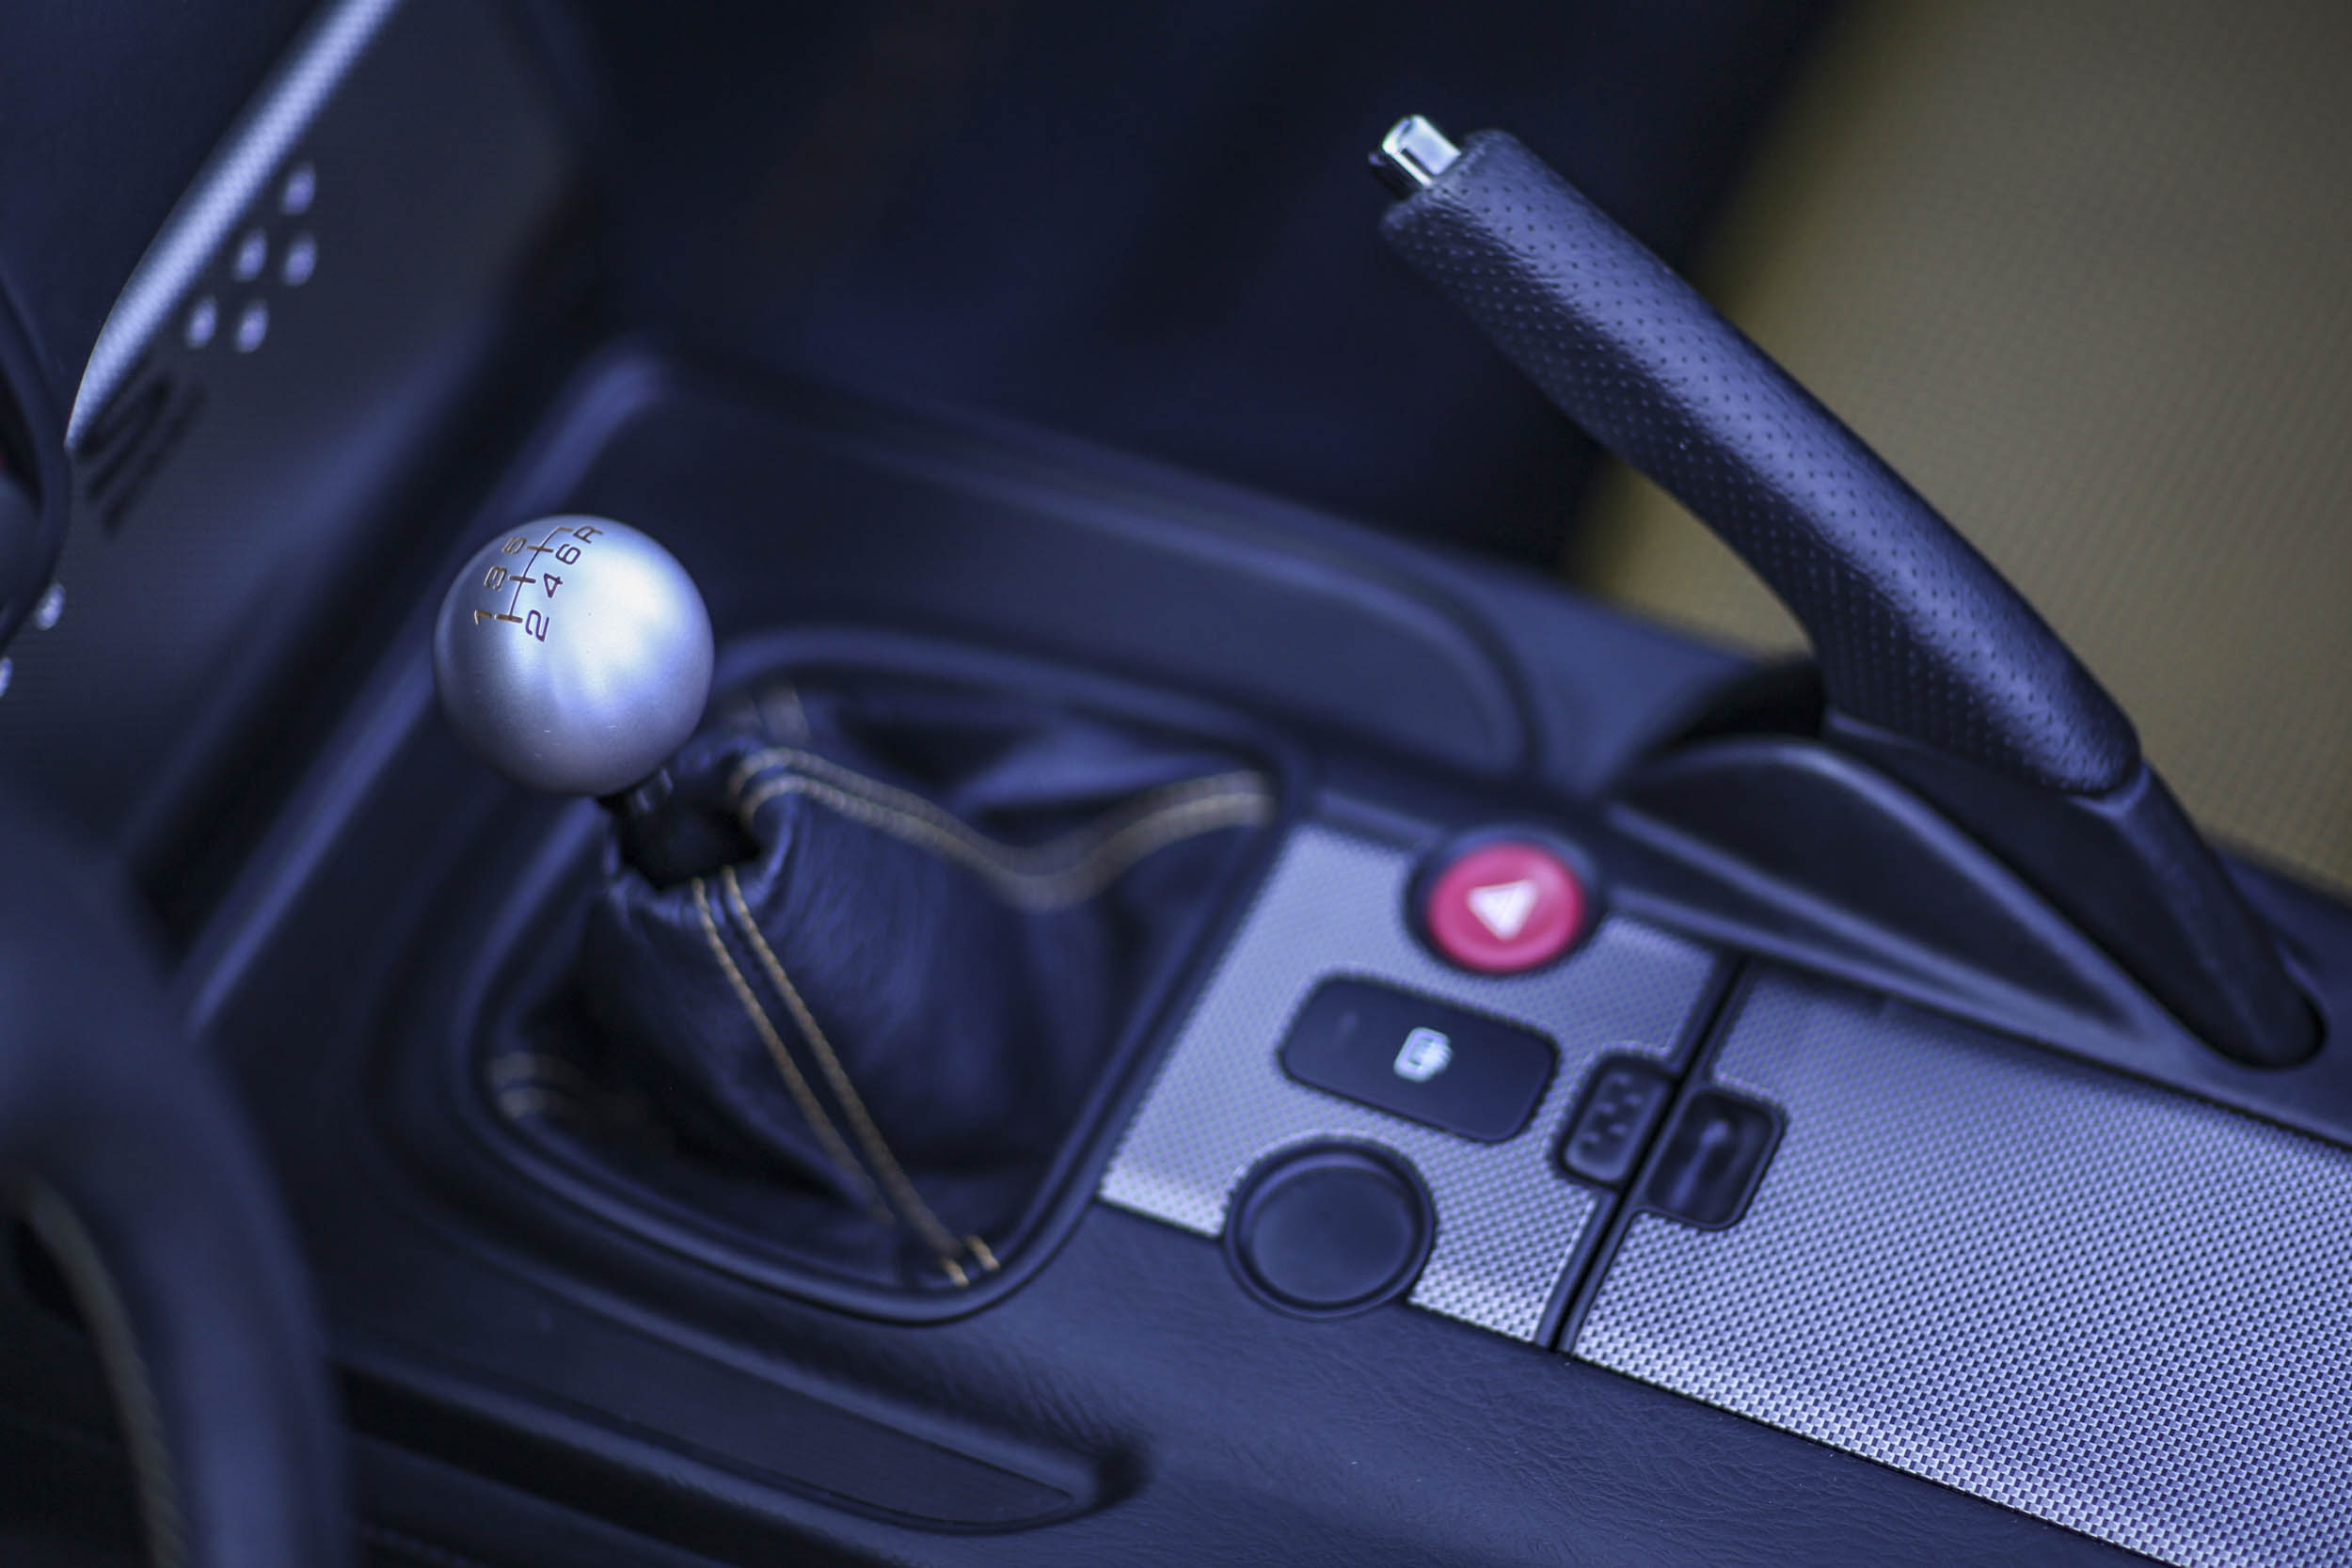 Honda S2000 shifter manual transmission